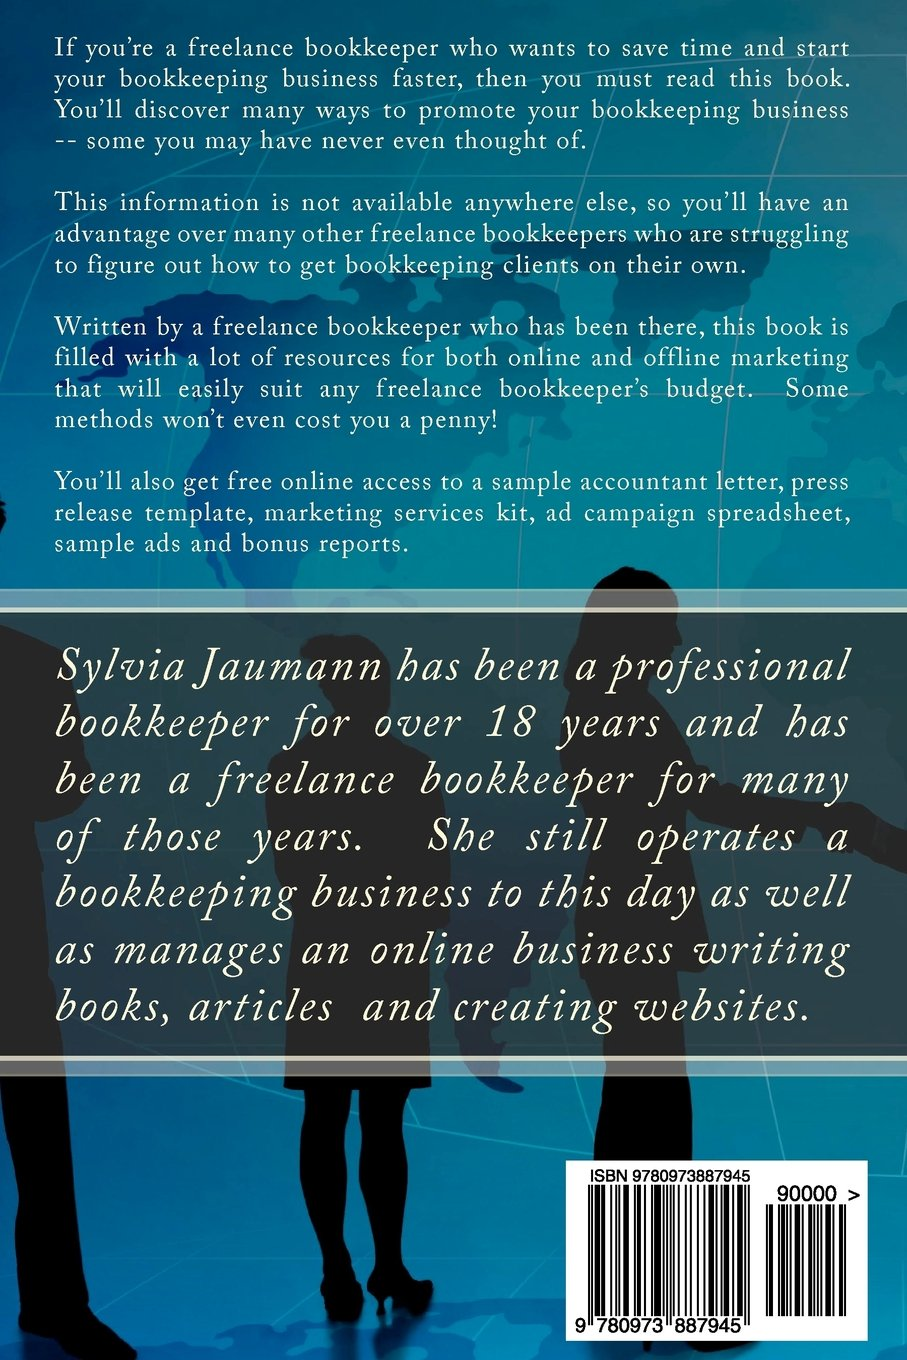 how to get bookkeeping clients quickly the bookkeeping business marketing guidebook amazoncouk sylvia jaumann 9780973887945 books - Freelance Bookkeeper